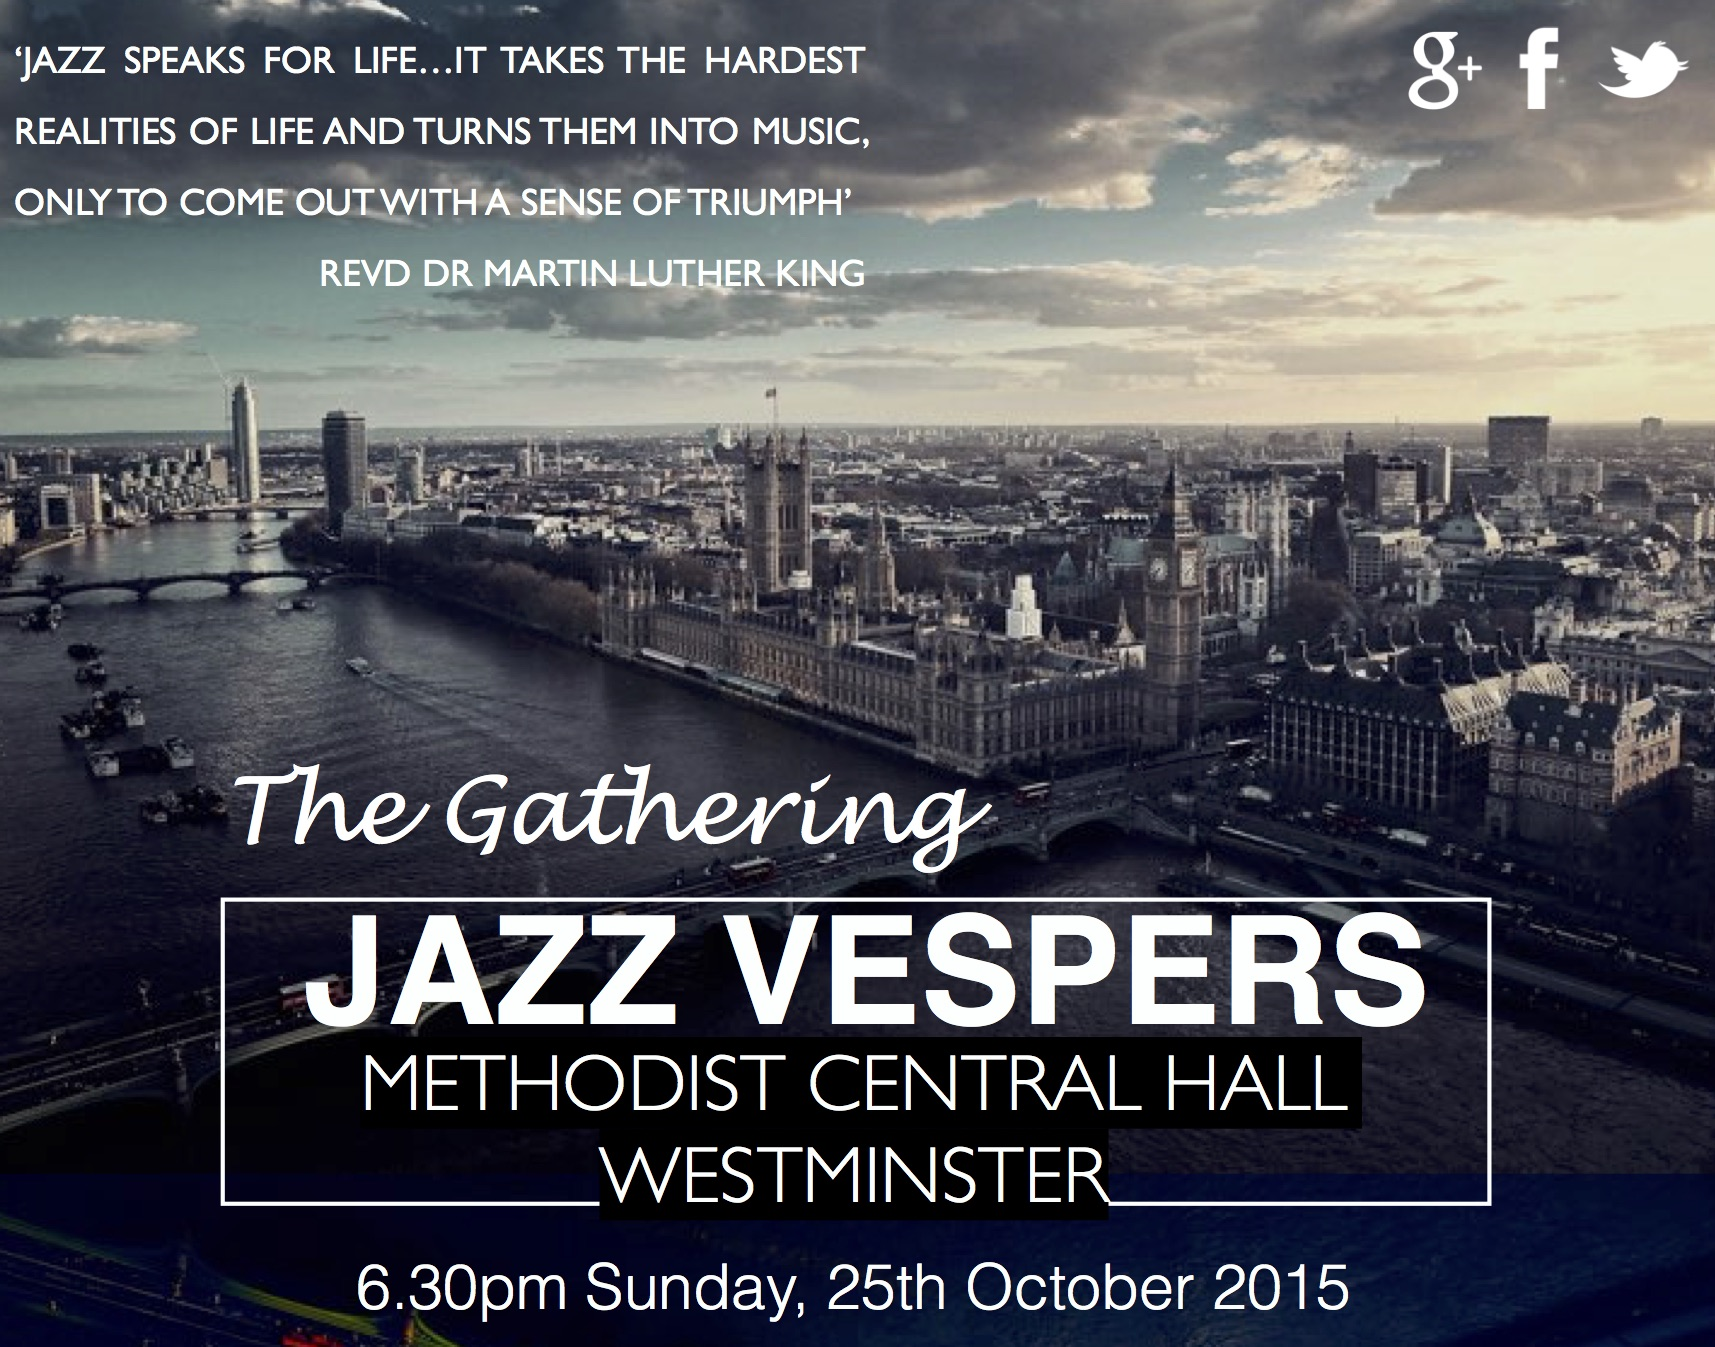 Jazz Vespers Event to be held at Methodist Central Hall, Westminster